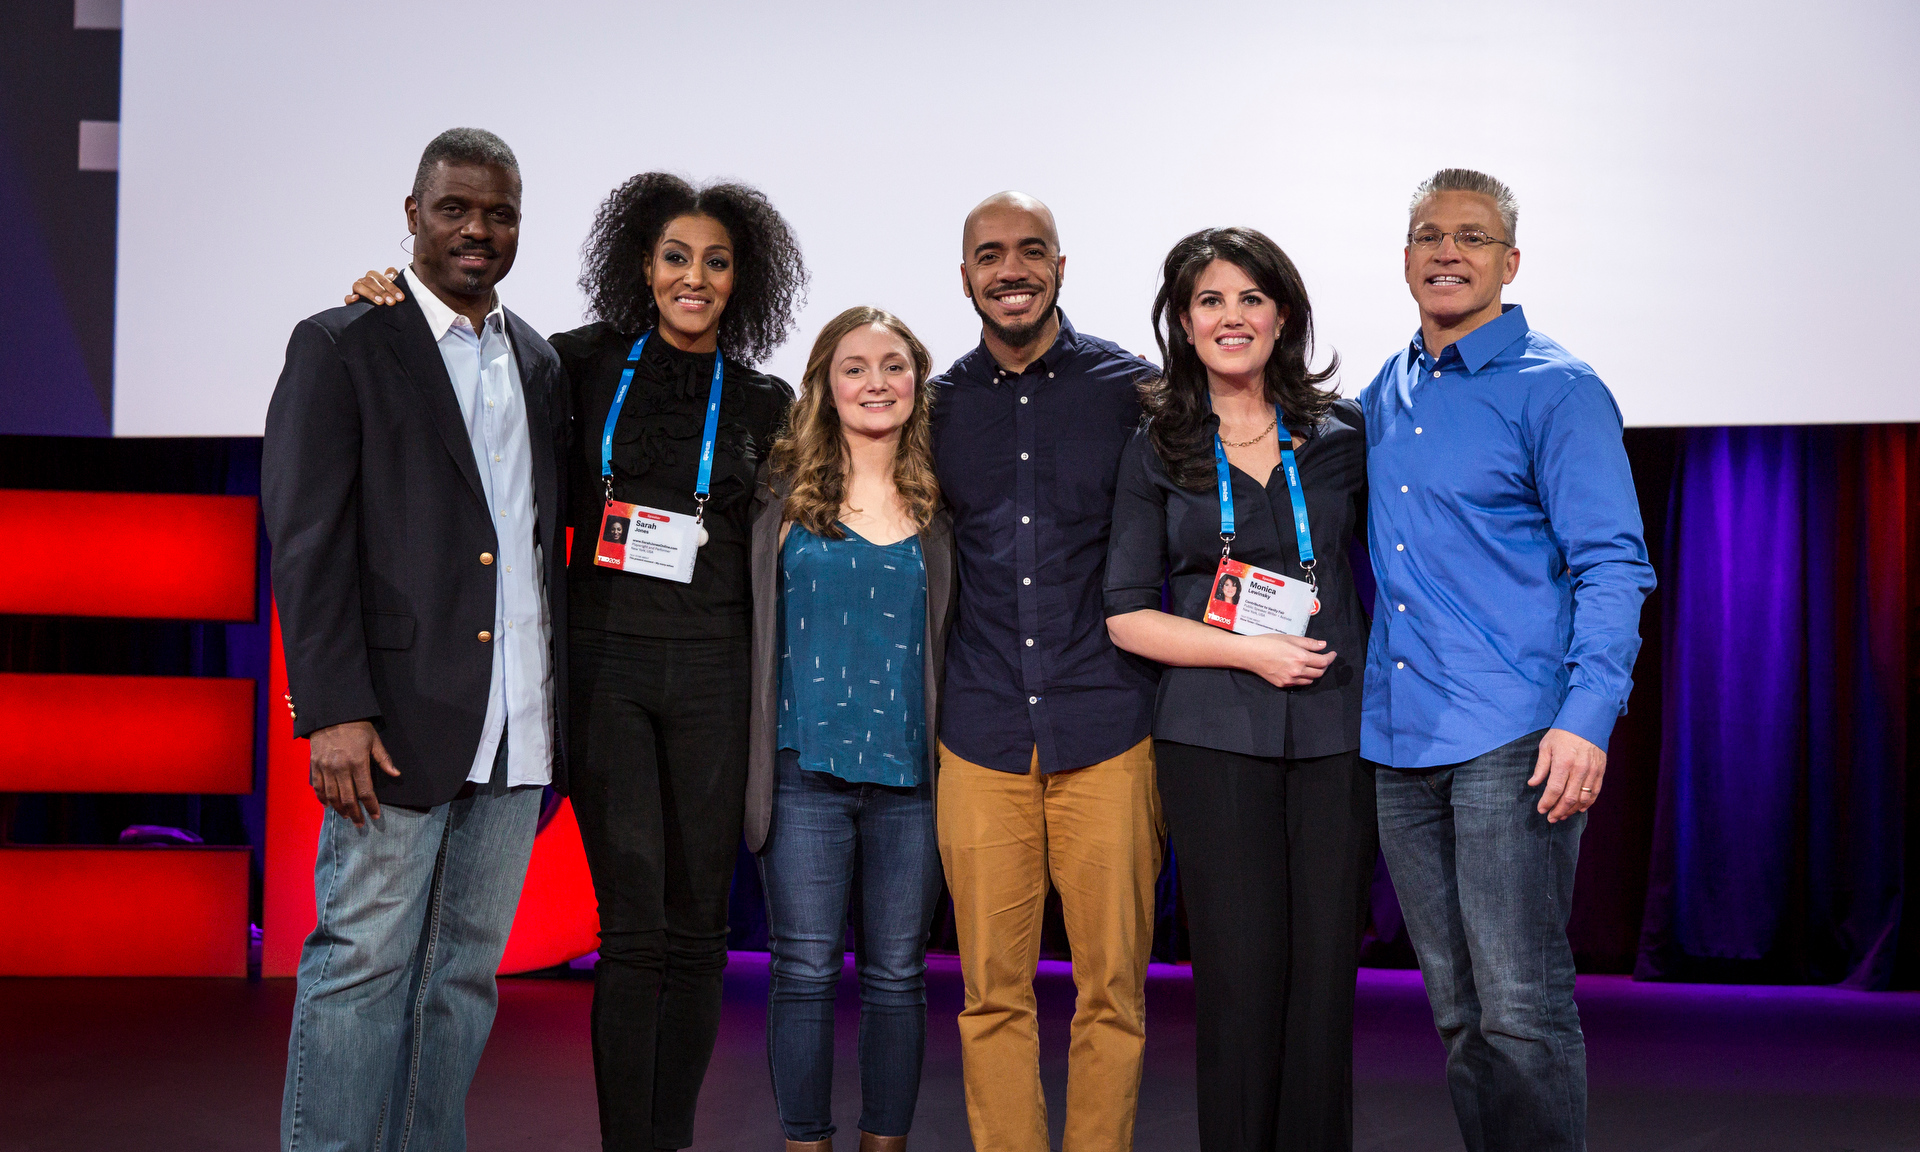 Session 9 speakers: Rev. Jeffrey Brown, Sarah Jones, Alice Goffman, Clint Smith, Monica Lewinsky, and Gary Haugen, TED2015 - Truth and Dare, Session 9. Photo: Bret Hartman/TED